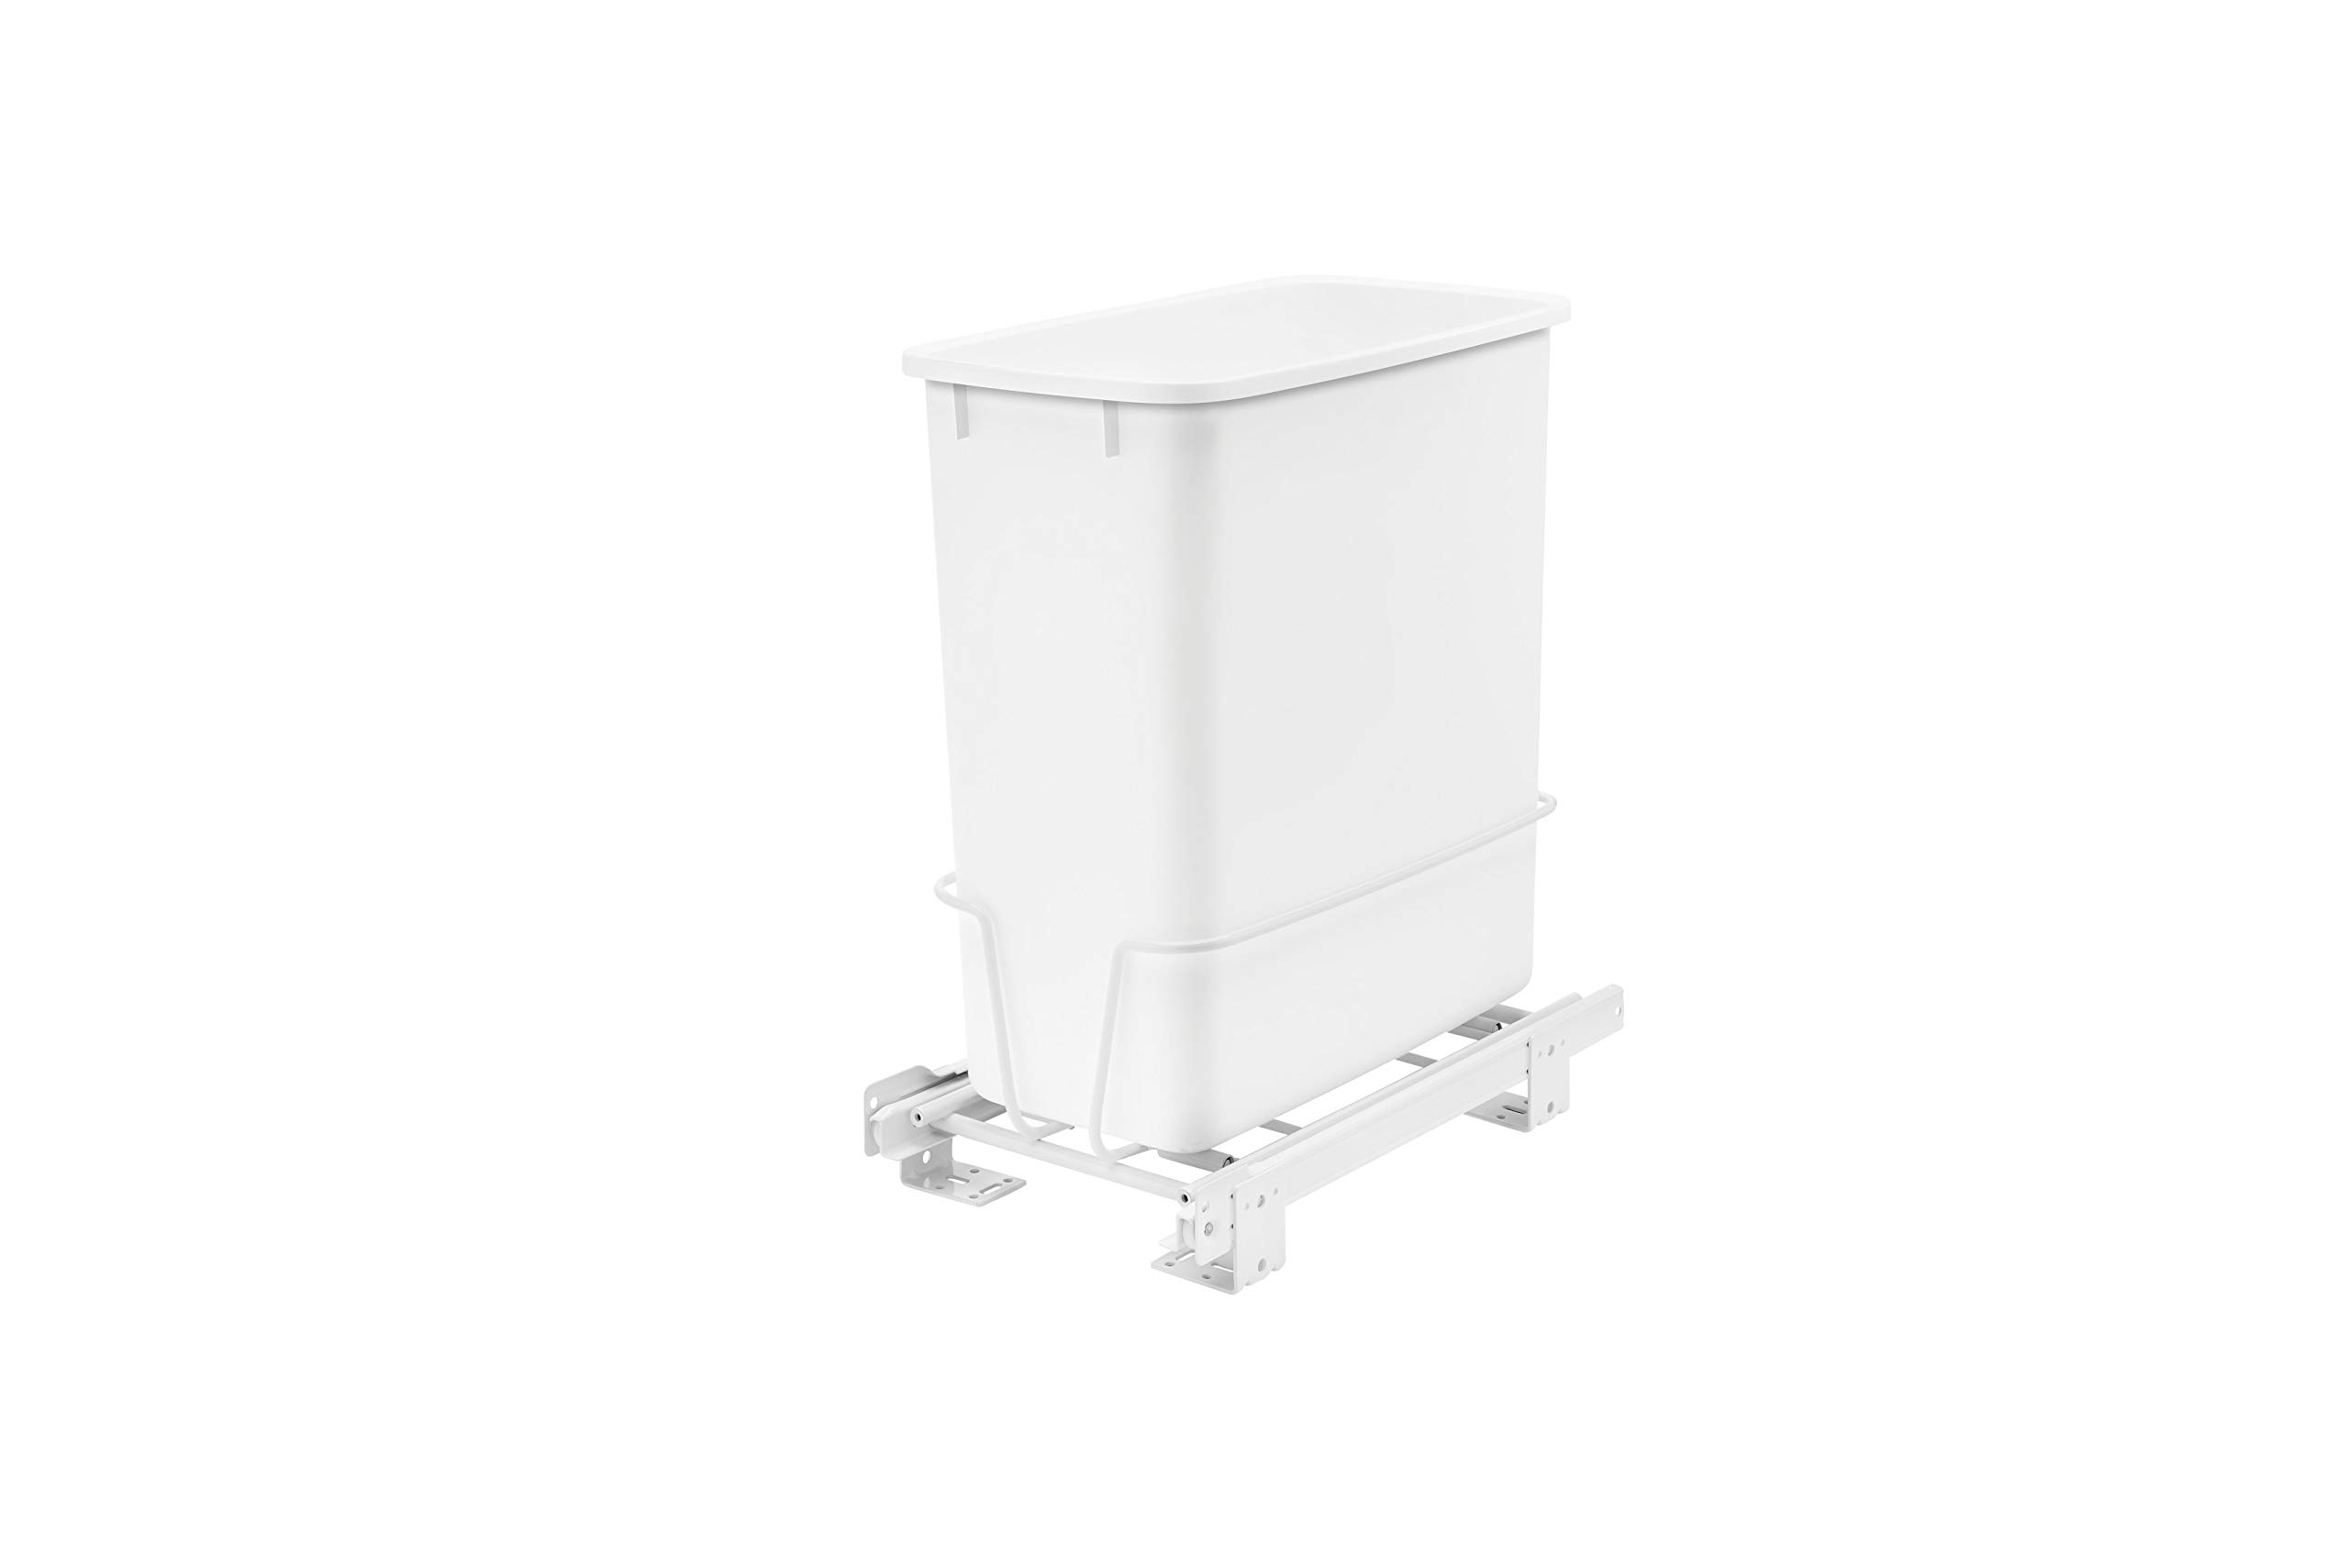 Pull-Out White Waste Container with Frame RV-814PB Single 20 Qt Rev-A-Shelf